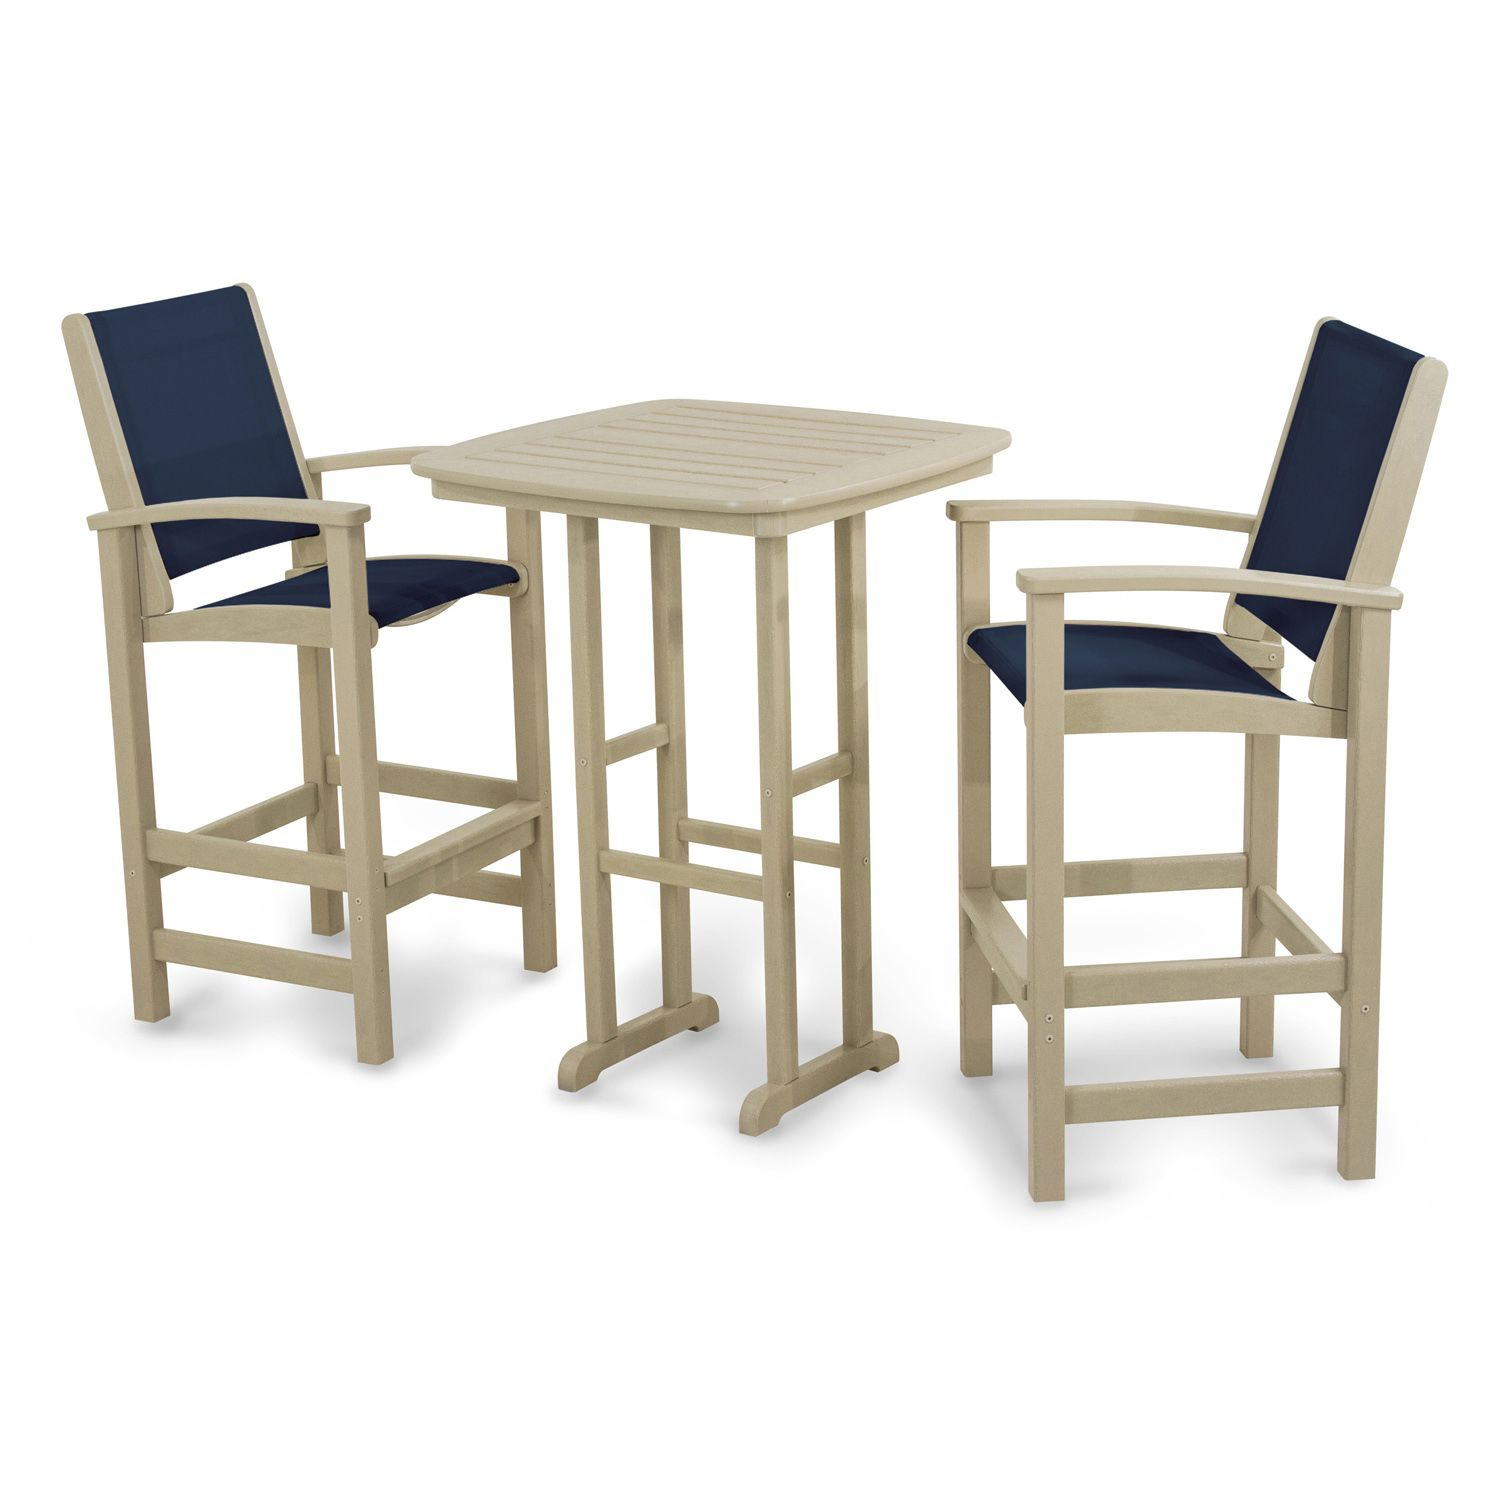 POLYWOOD® 3 Piece Coastal Outdoor Bar Chair U0026 Table Set